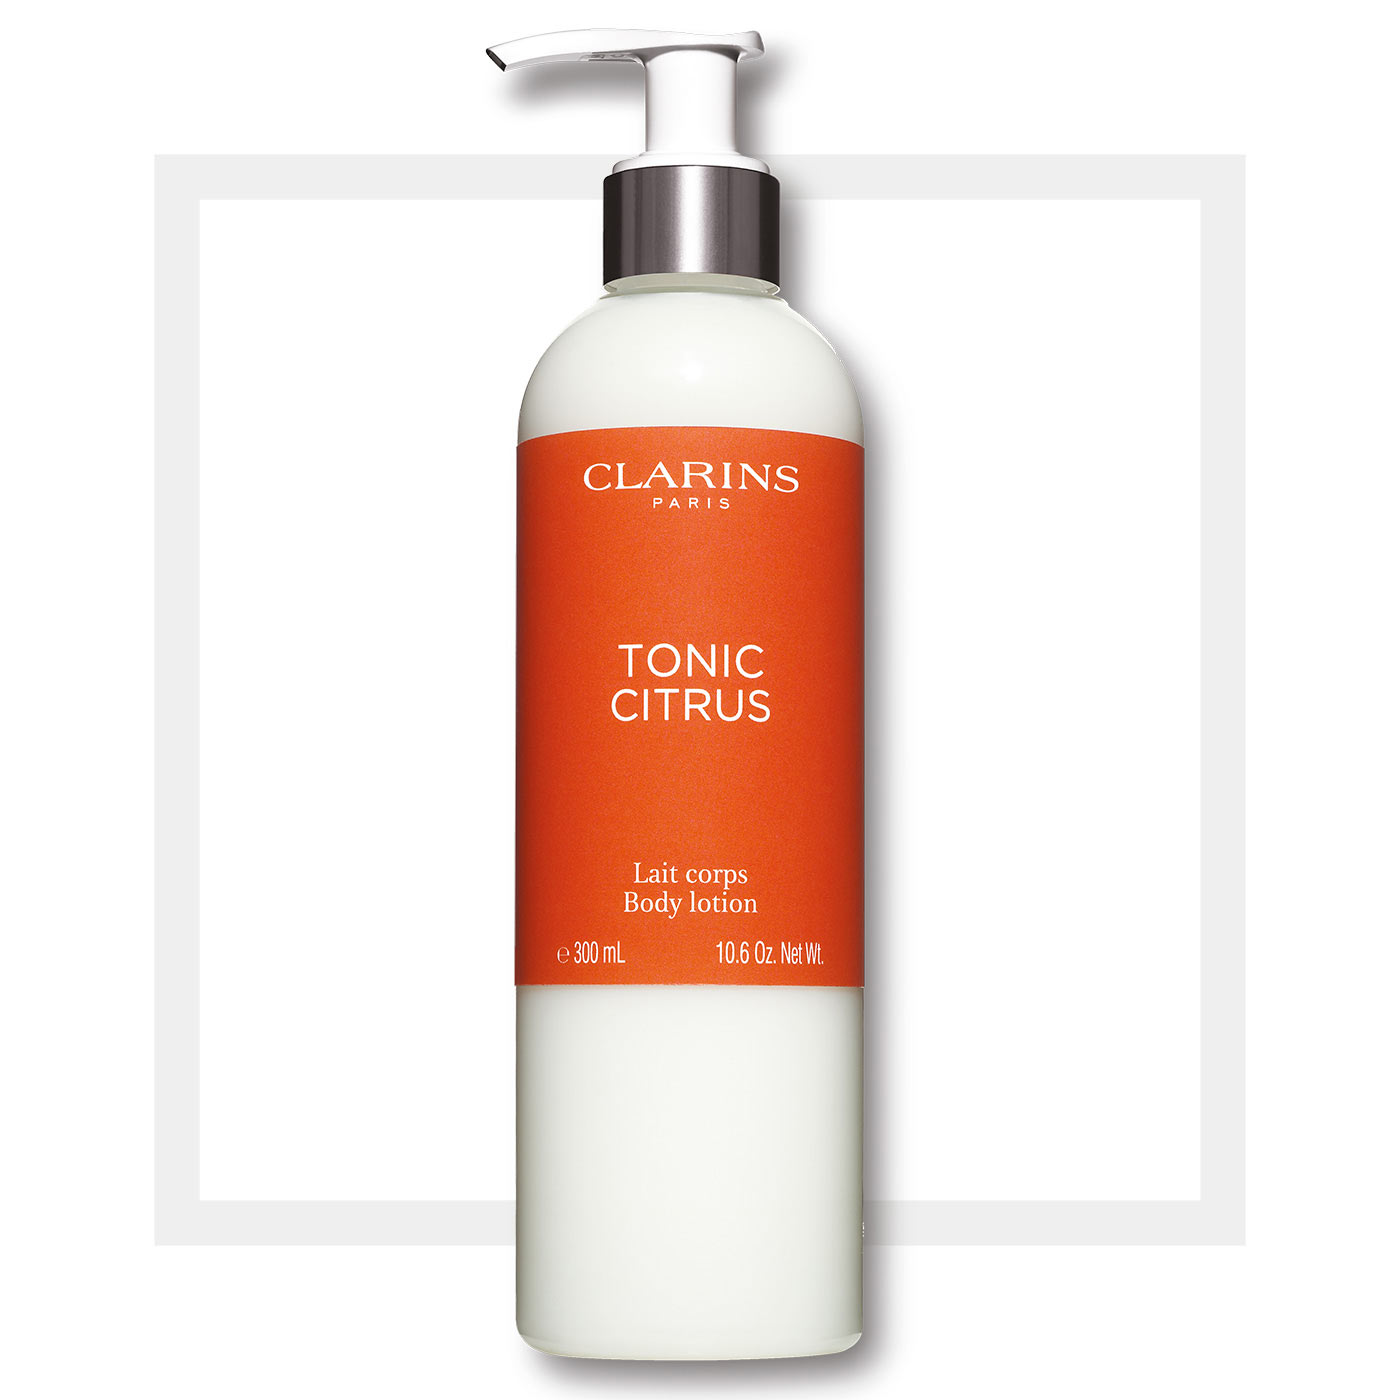 Tonic Citrus Body Lotion - Clarins